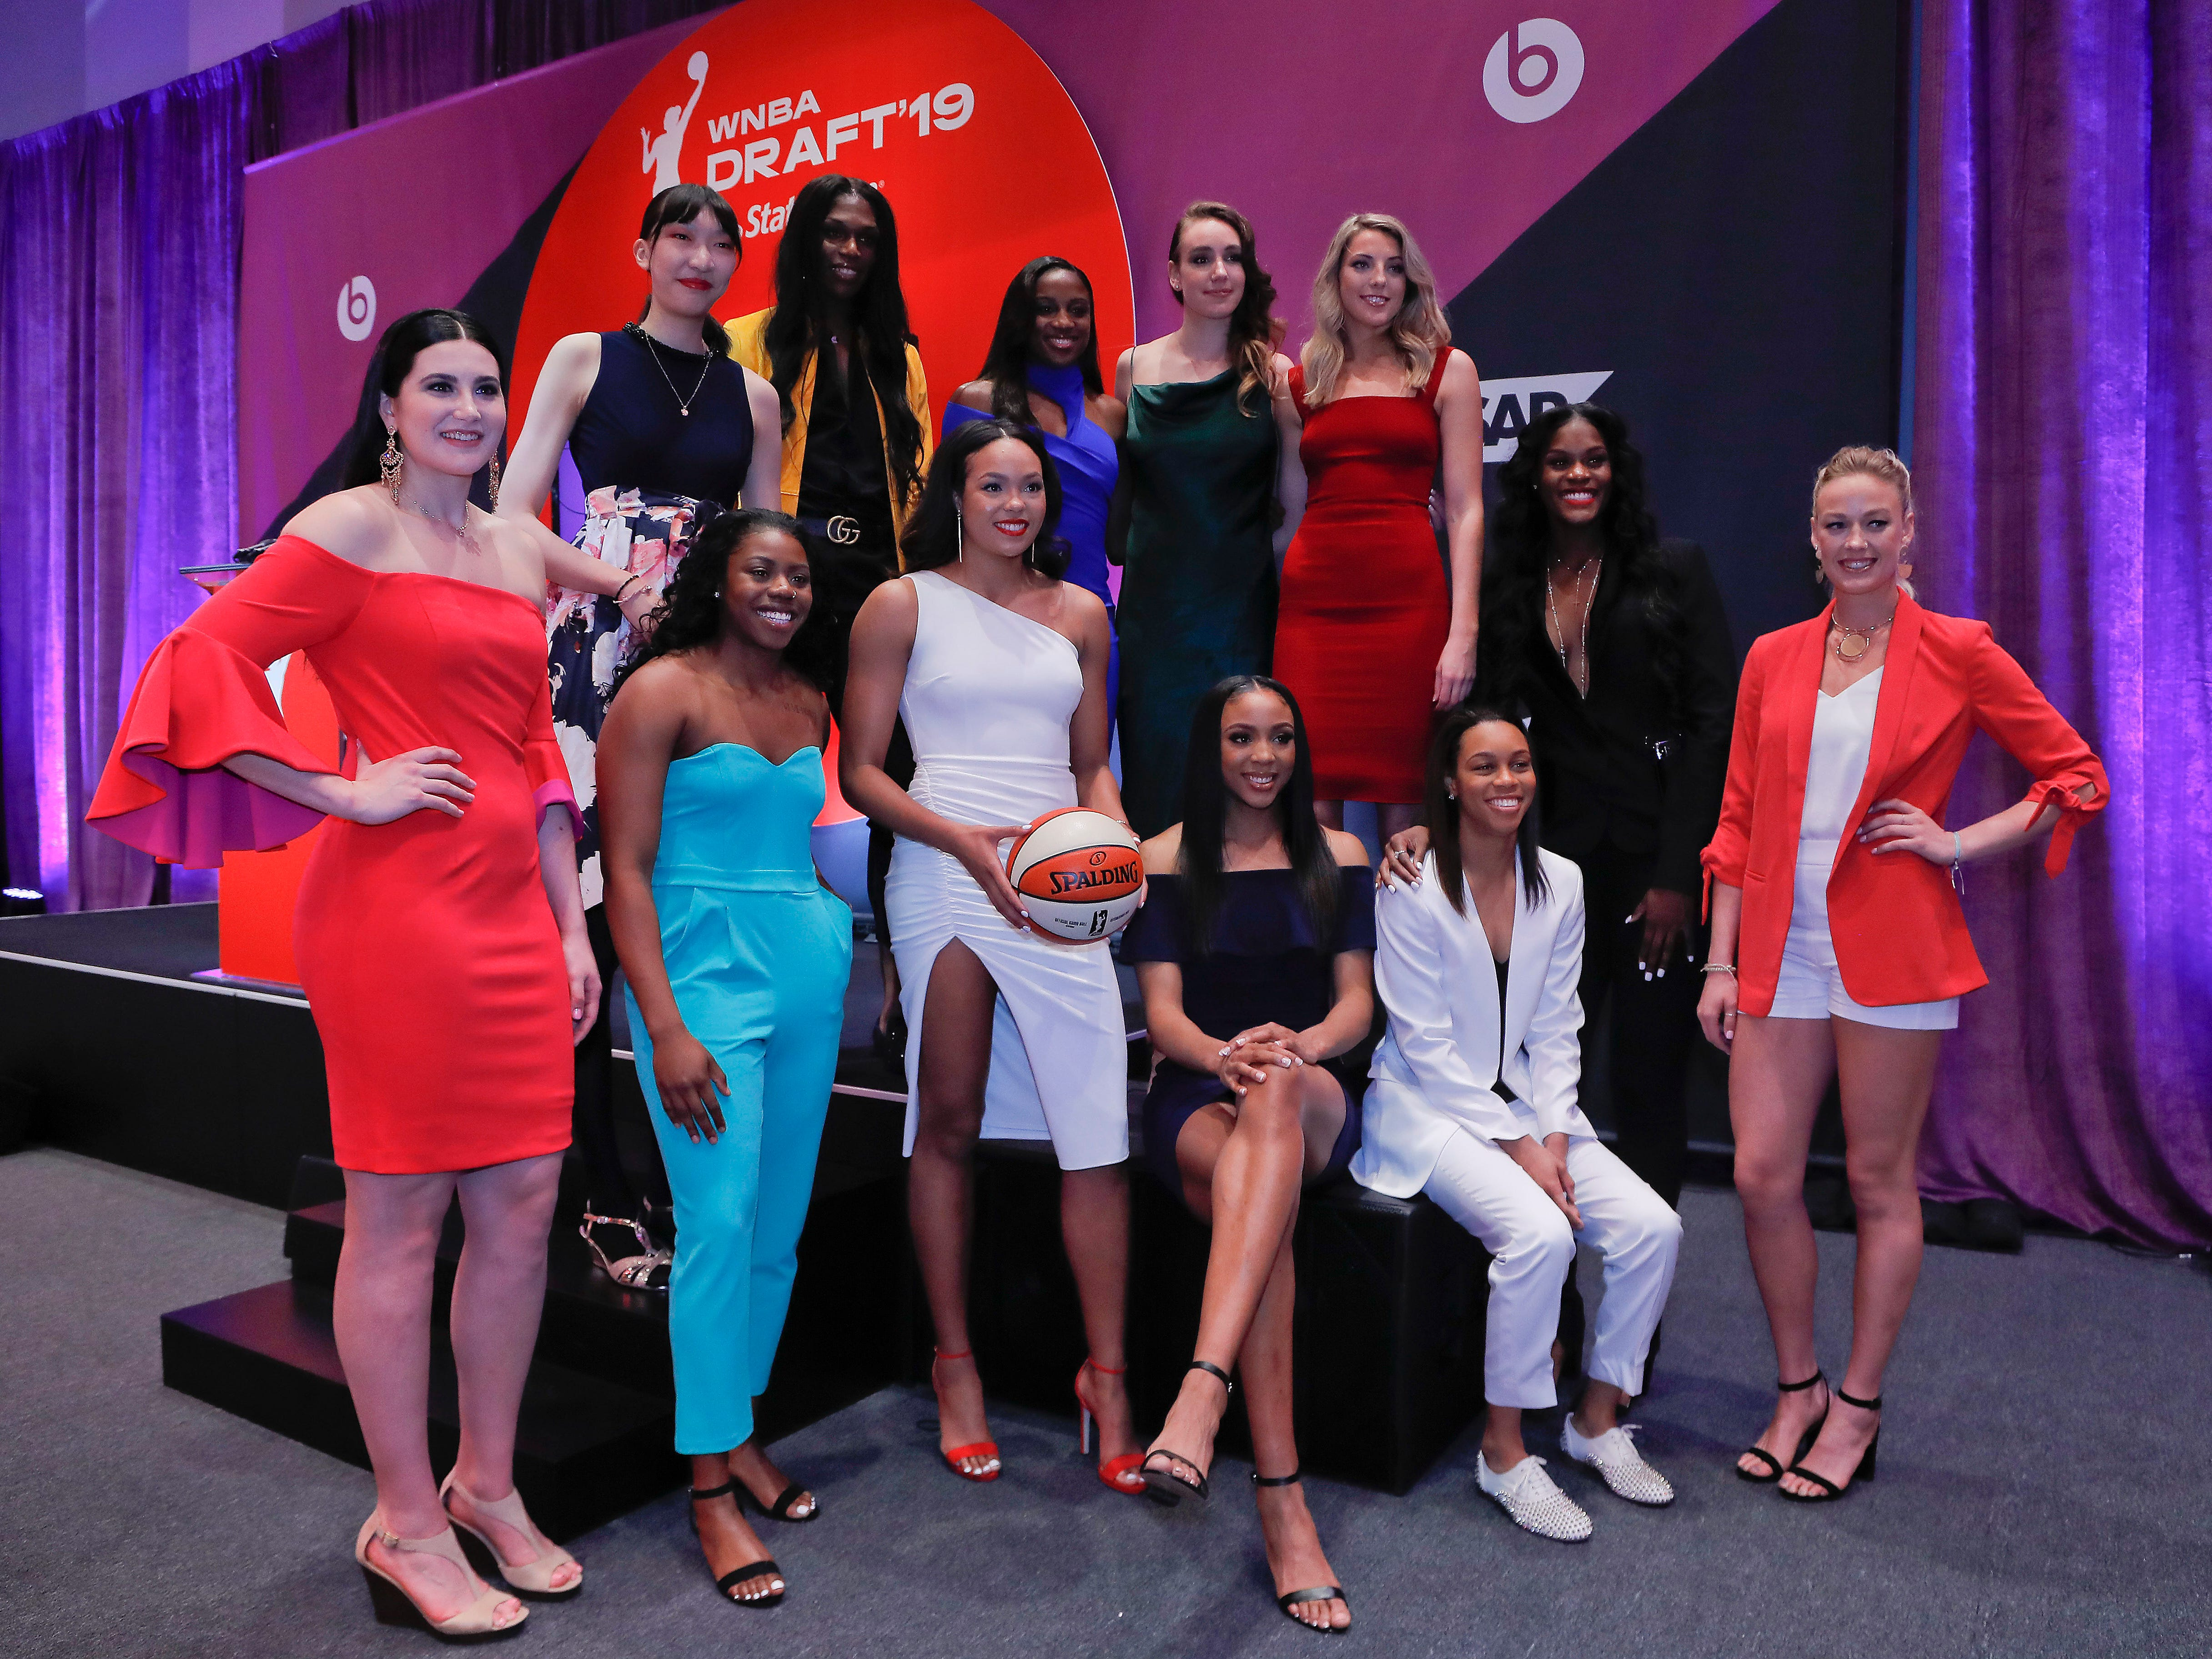 Draft prospects pose for a photo before the start of the WNBA draft in New York.